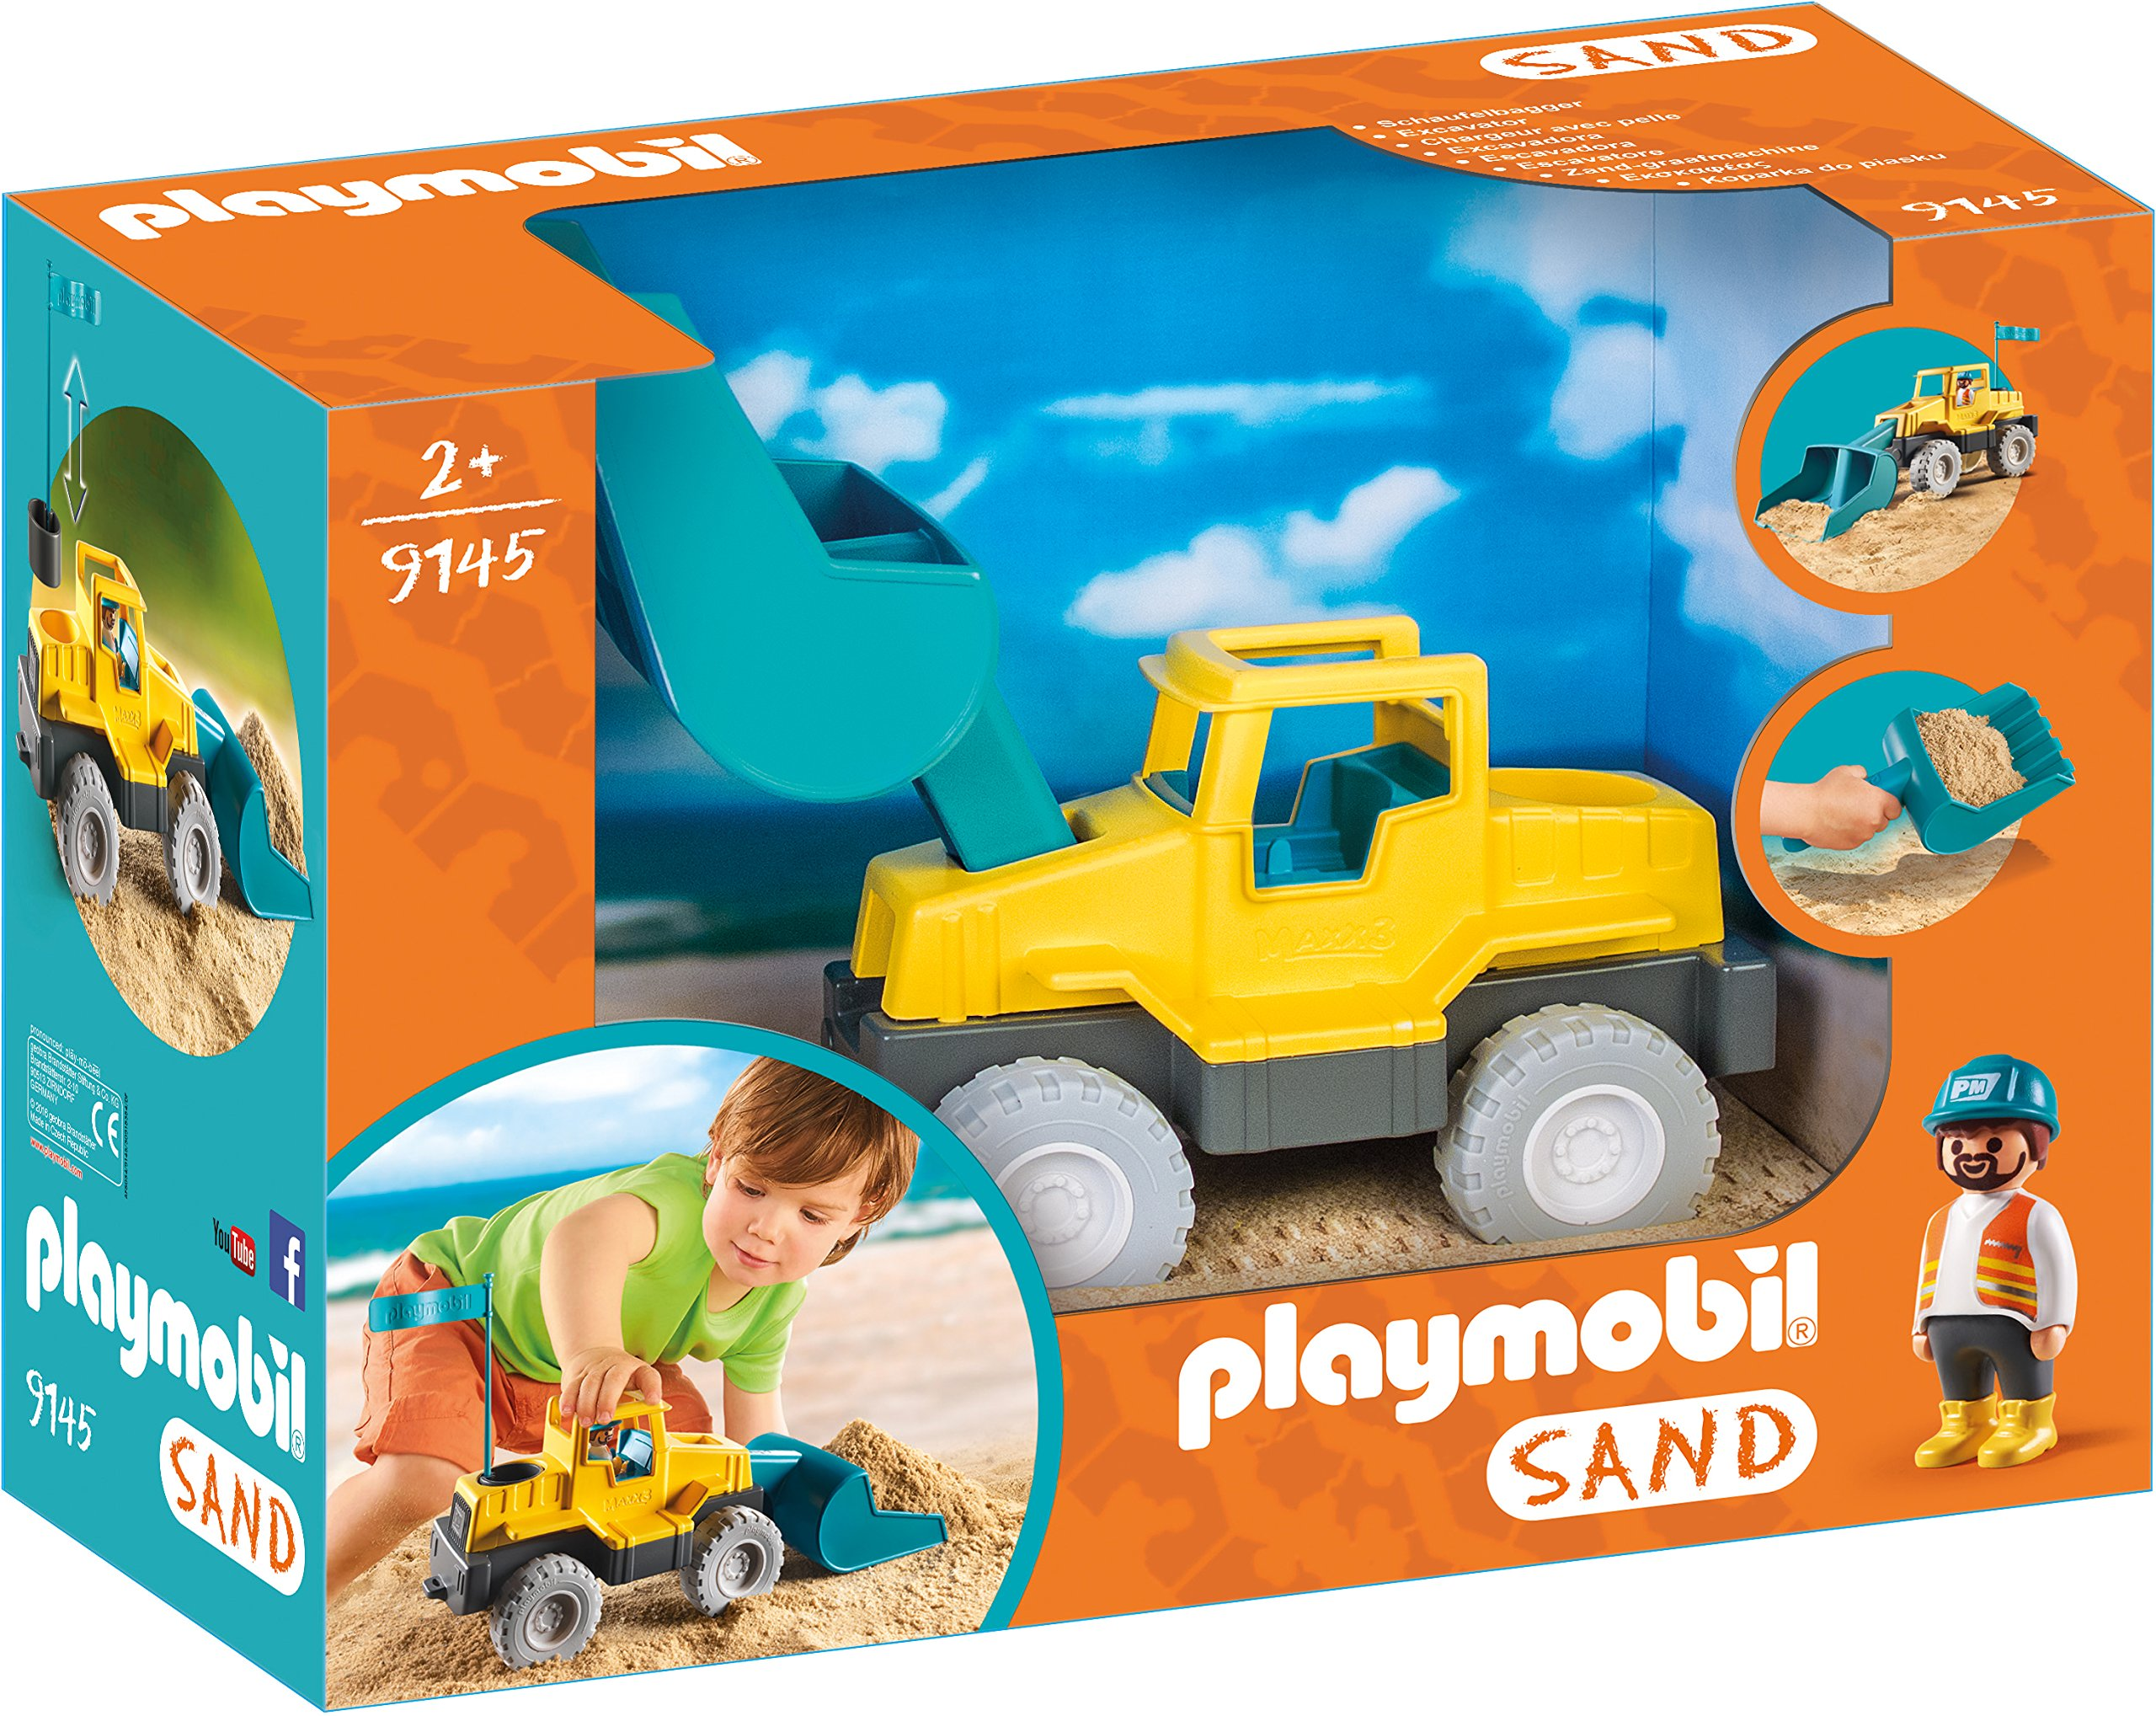 Playmobil Sand 9145 Excavator for Children Ages 2+